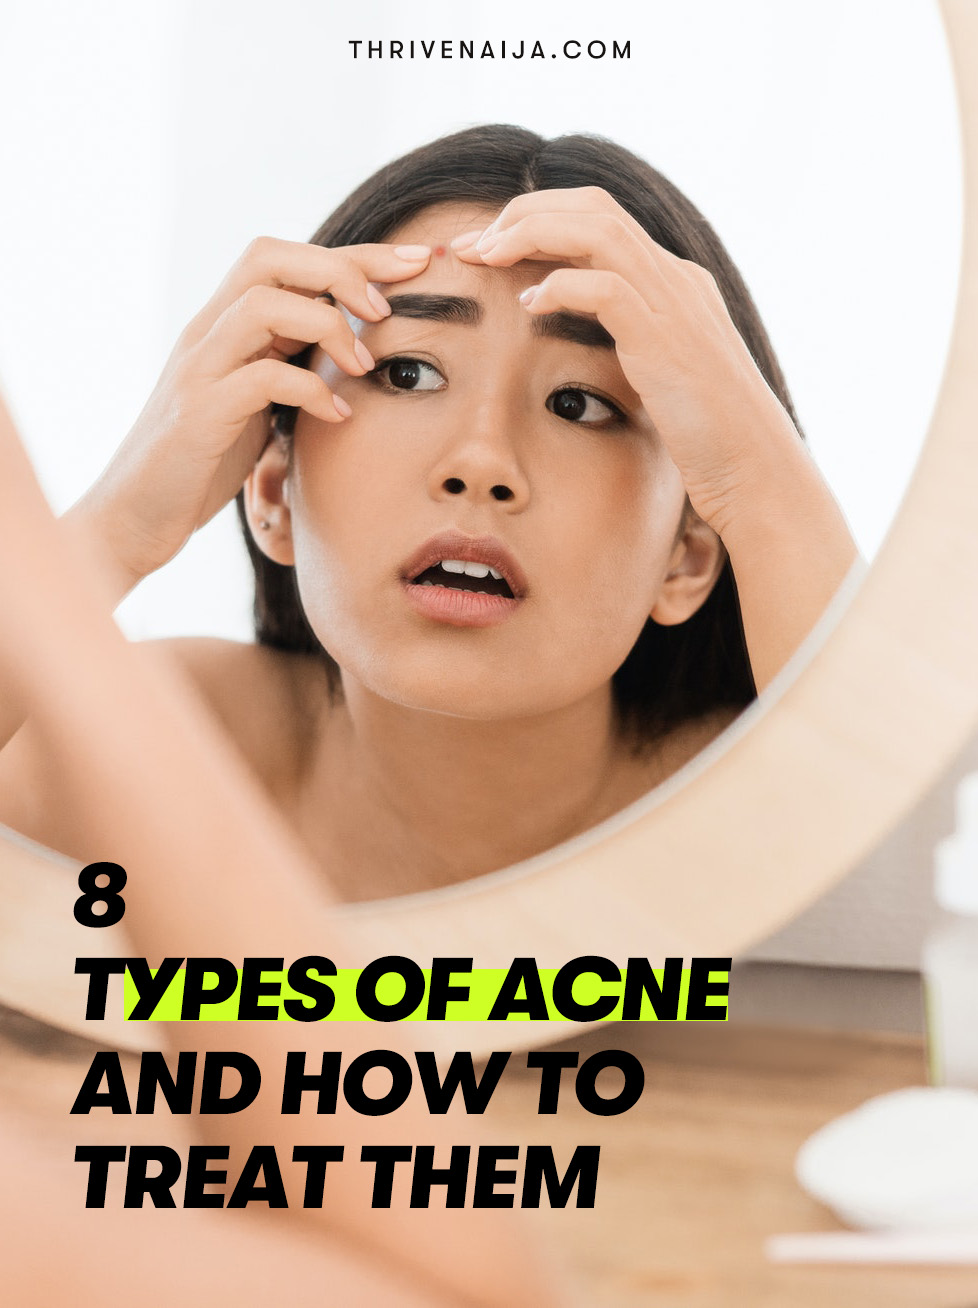 8 Types Of Acne And How to Treat Them